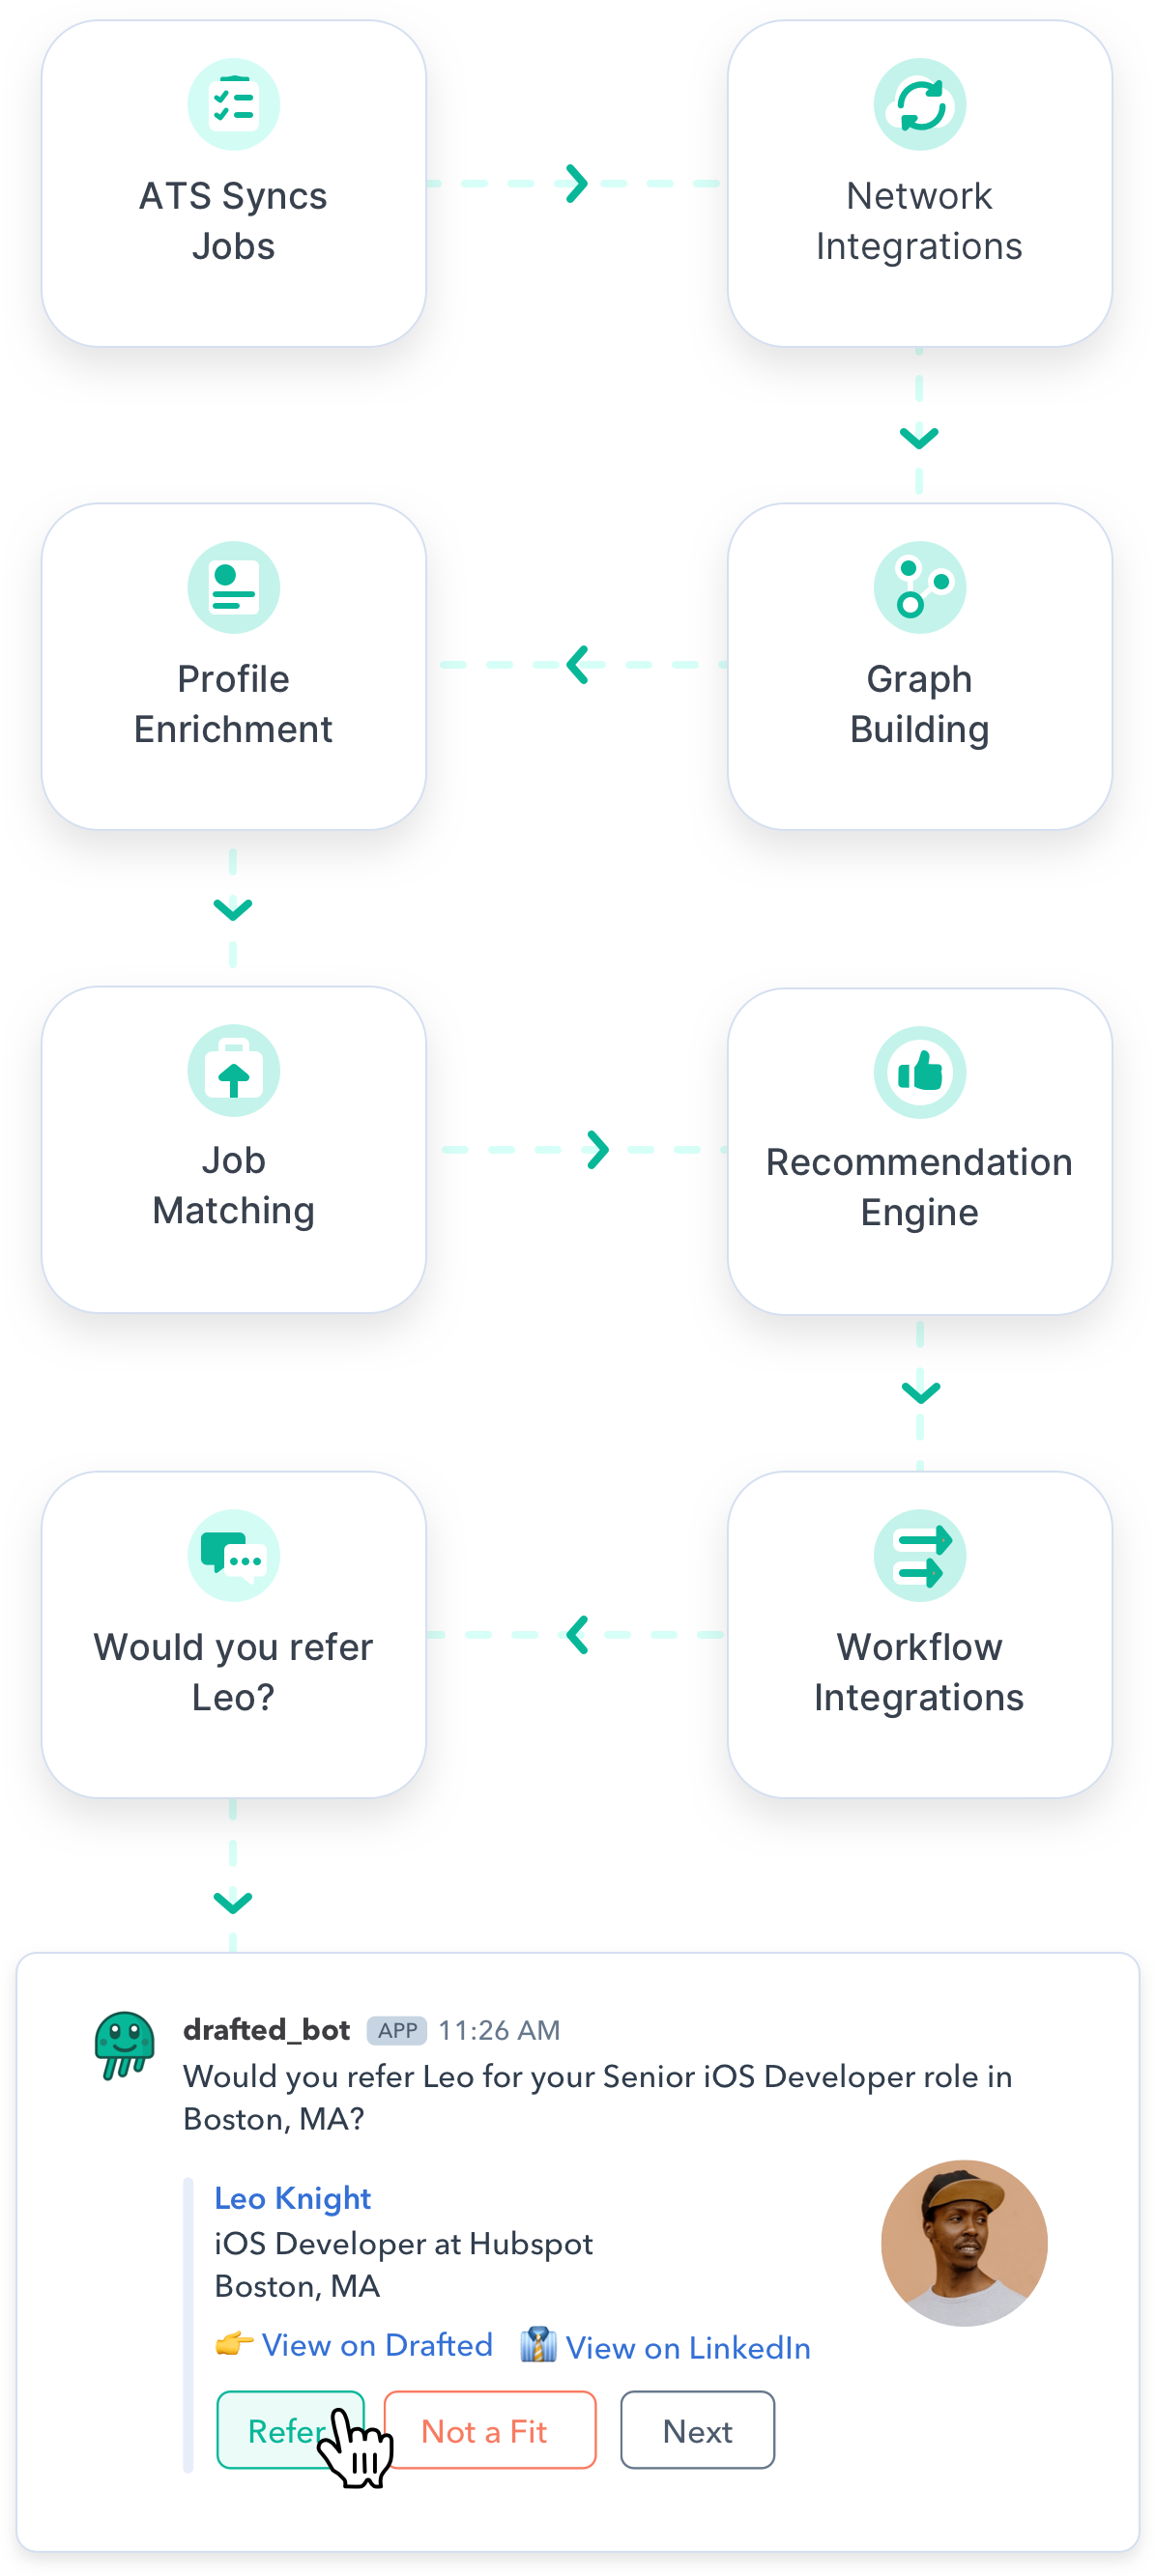 Image of how Drafted uses recruiting technology to sync with ATS, build graphs, enrich profile, and match jobs to create a referral recommendation.